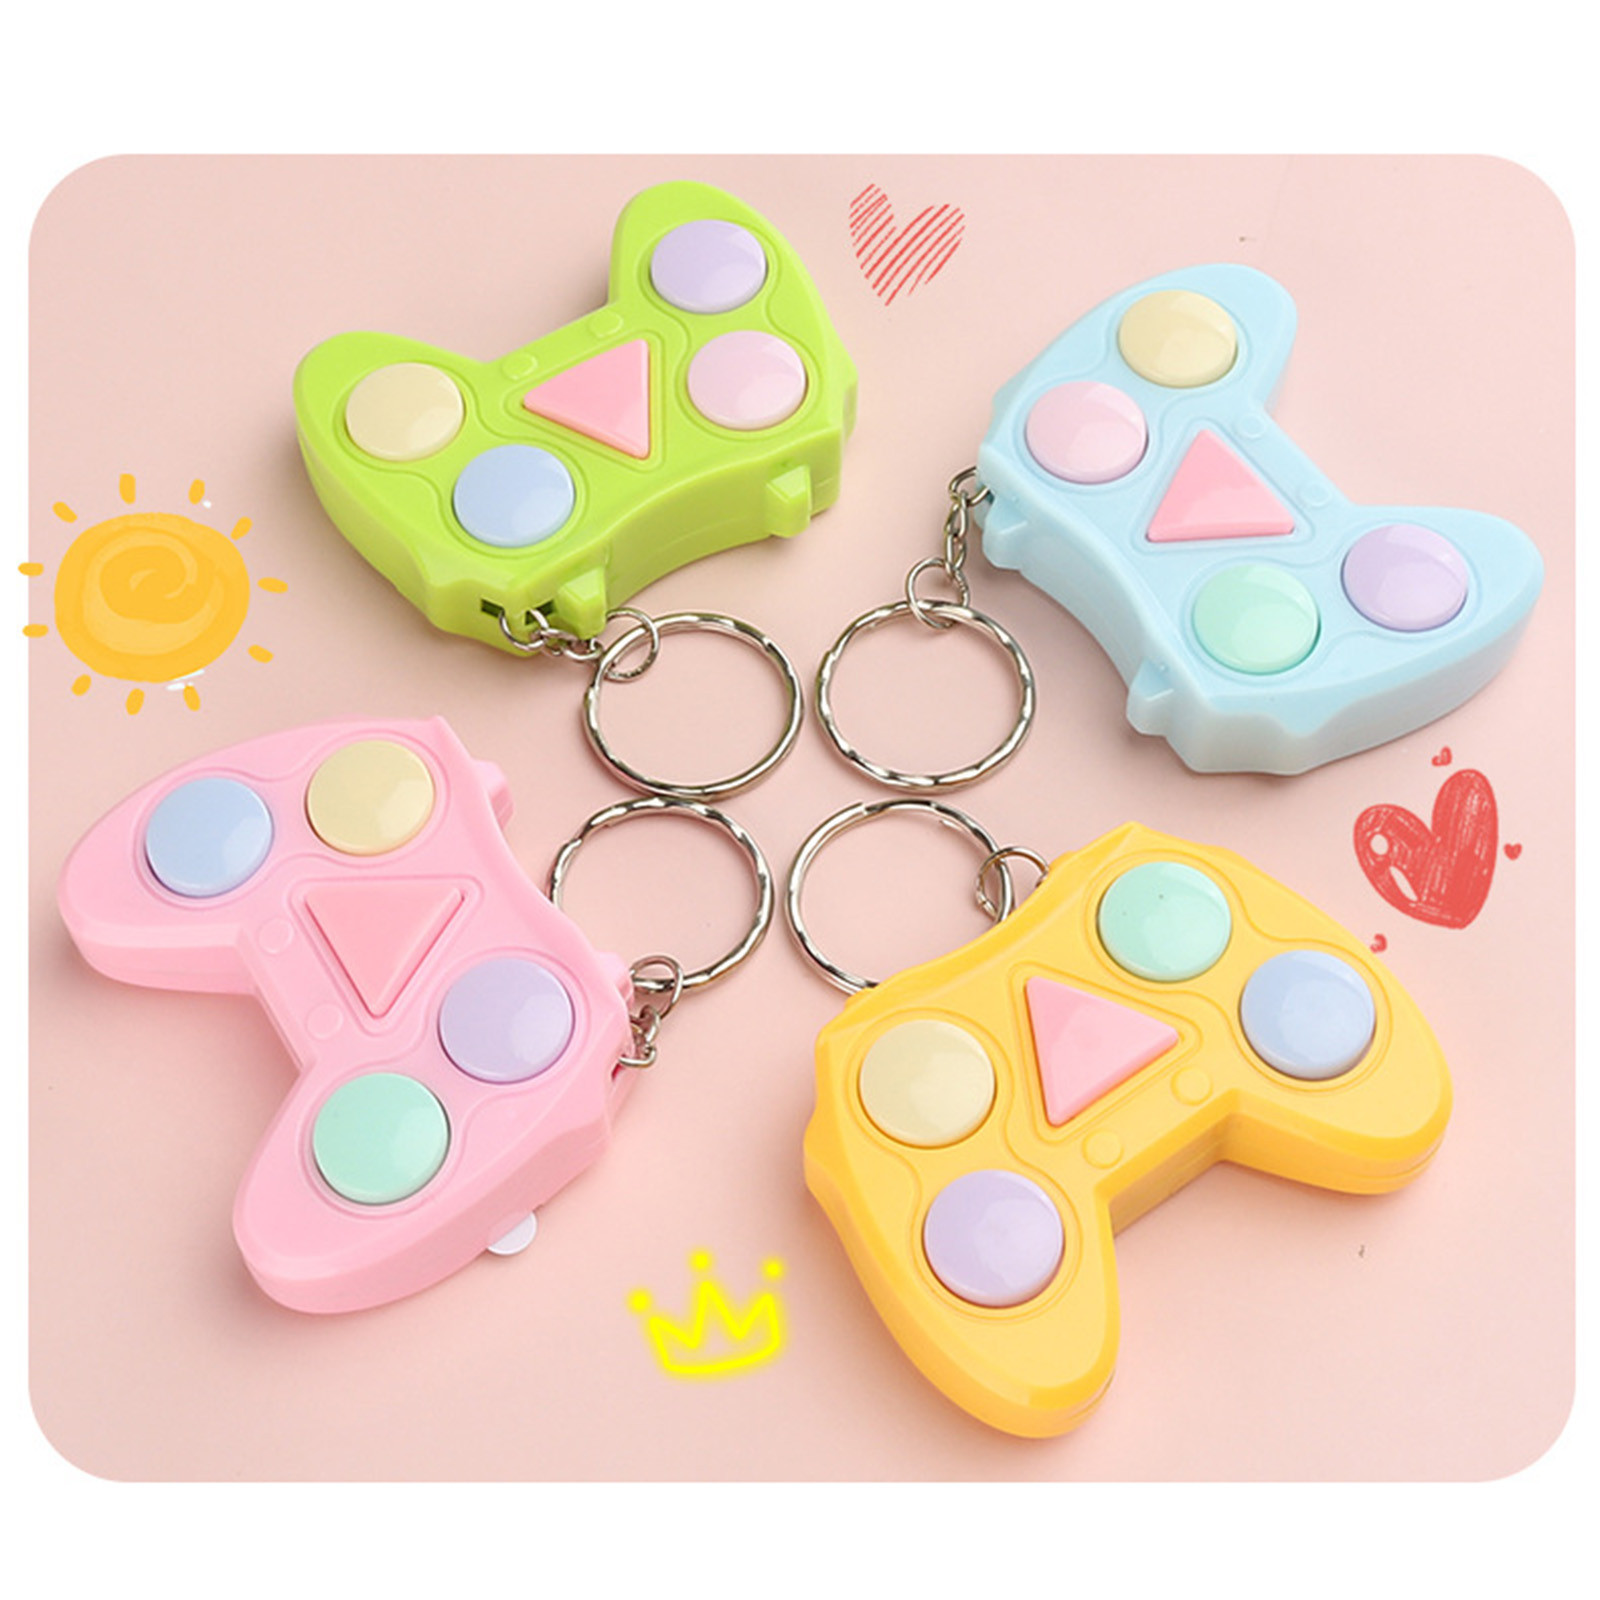 Figet Toy Keychain Memory-Stress Dimple Mini Handle Small Game Early-Educational Electronic img2